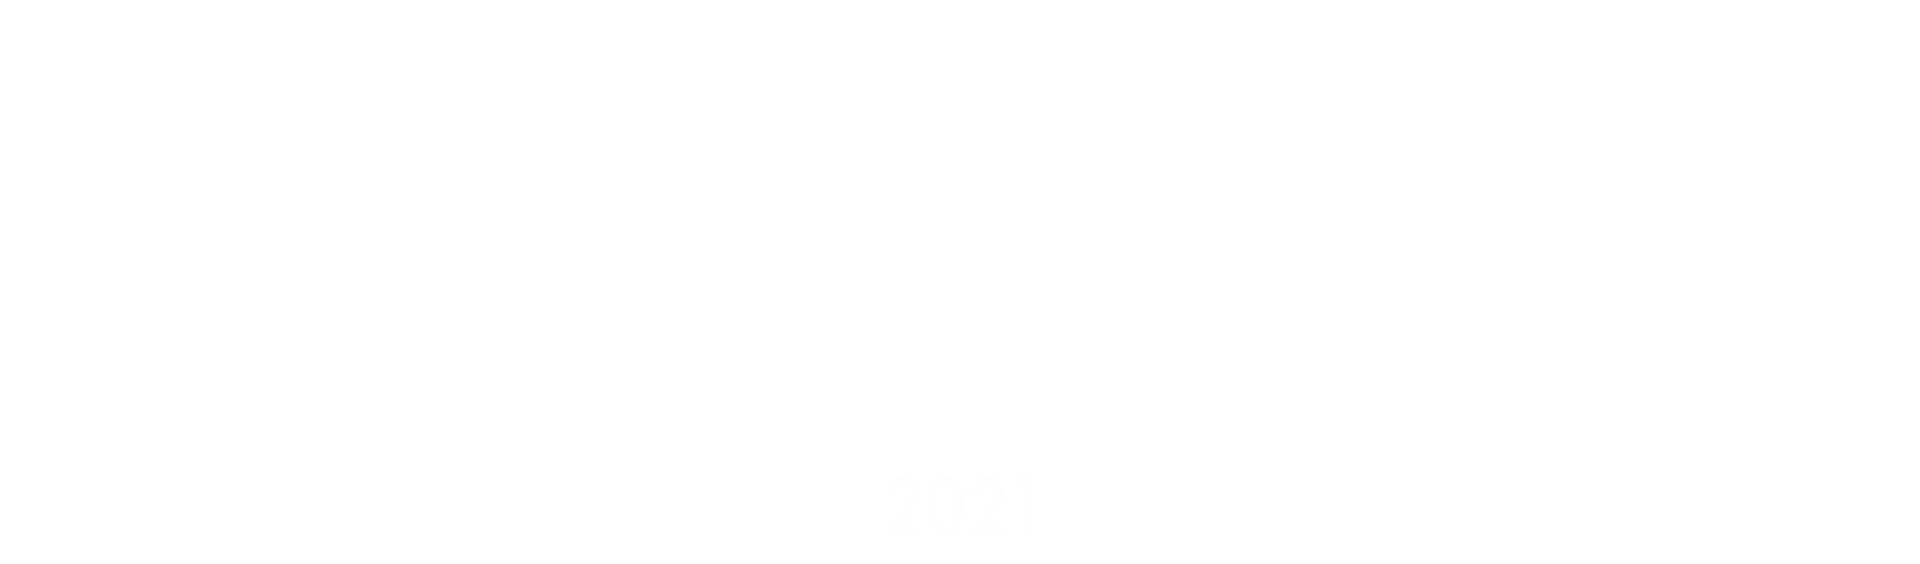 Accounting & Technology Conference